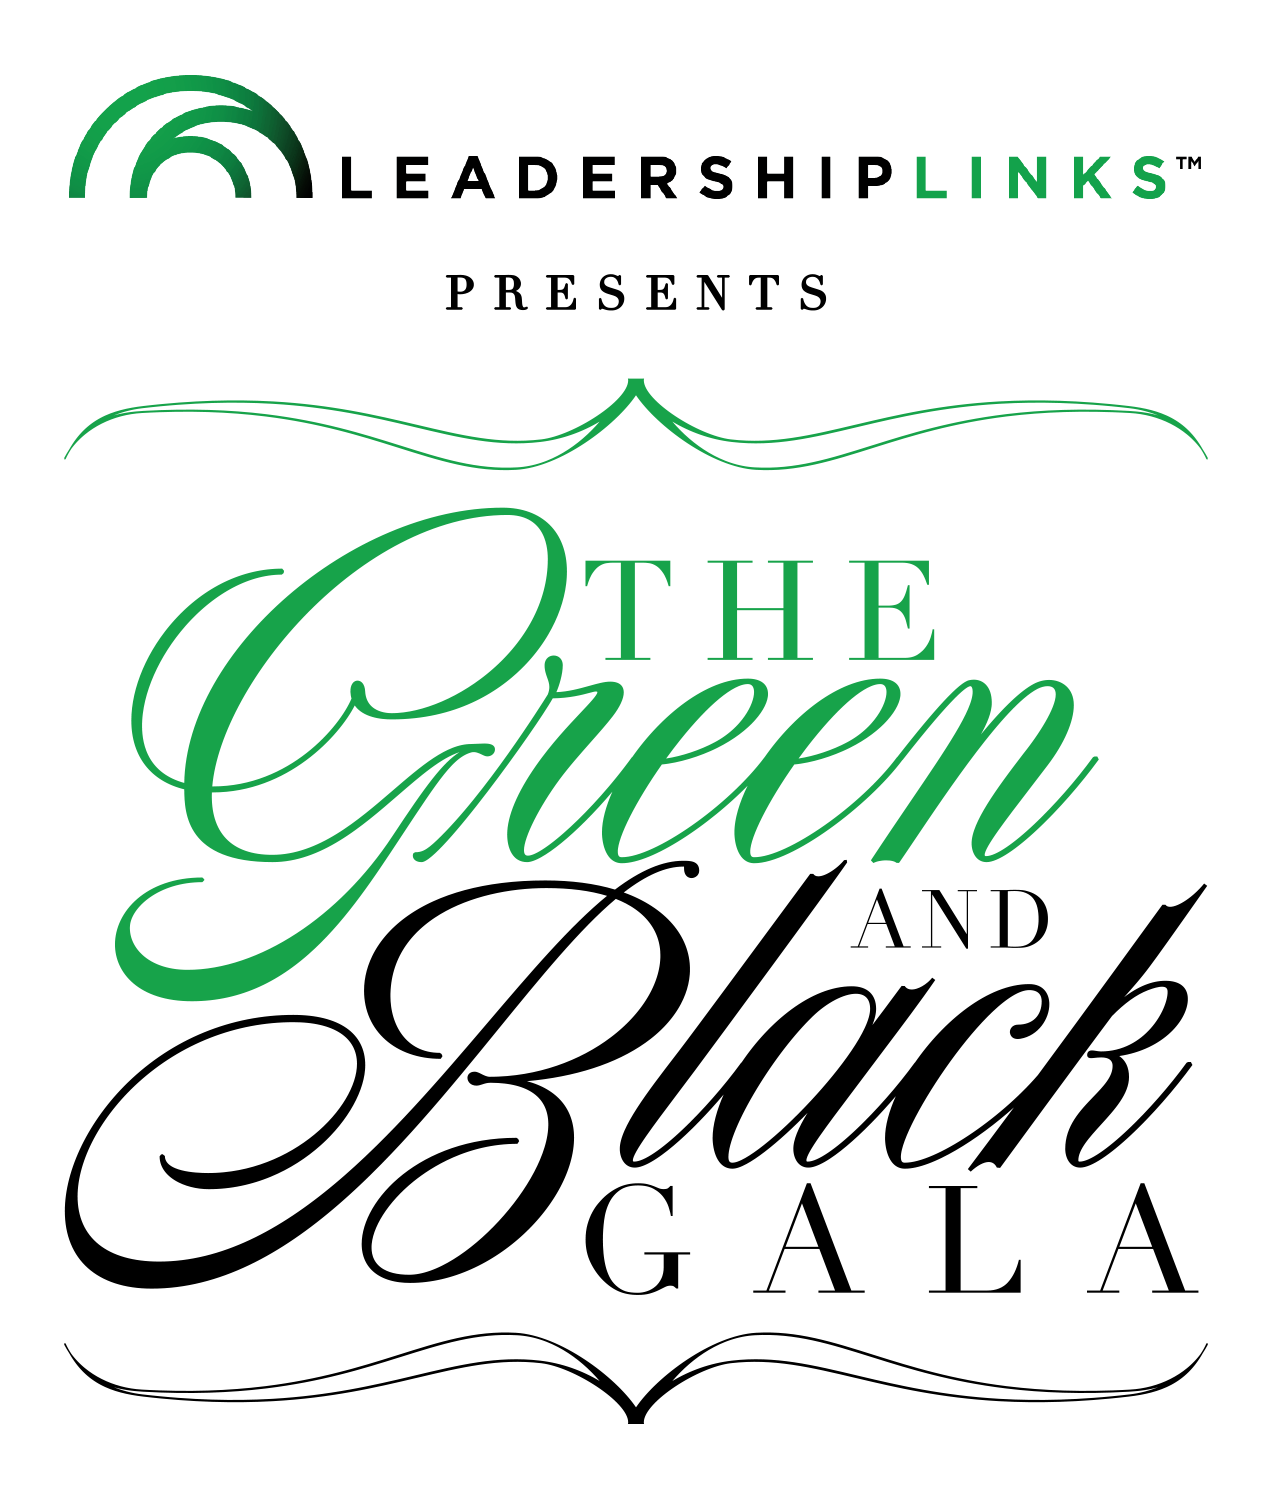 The Green and Black Gala